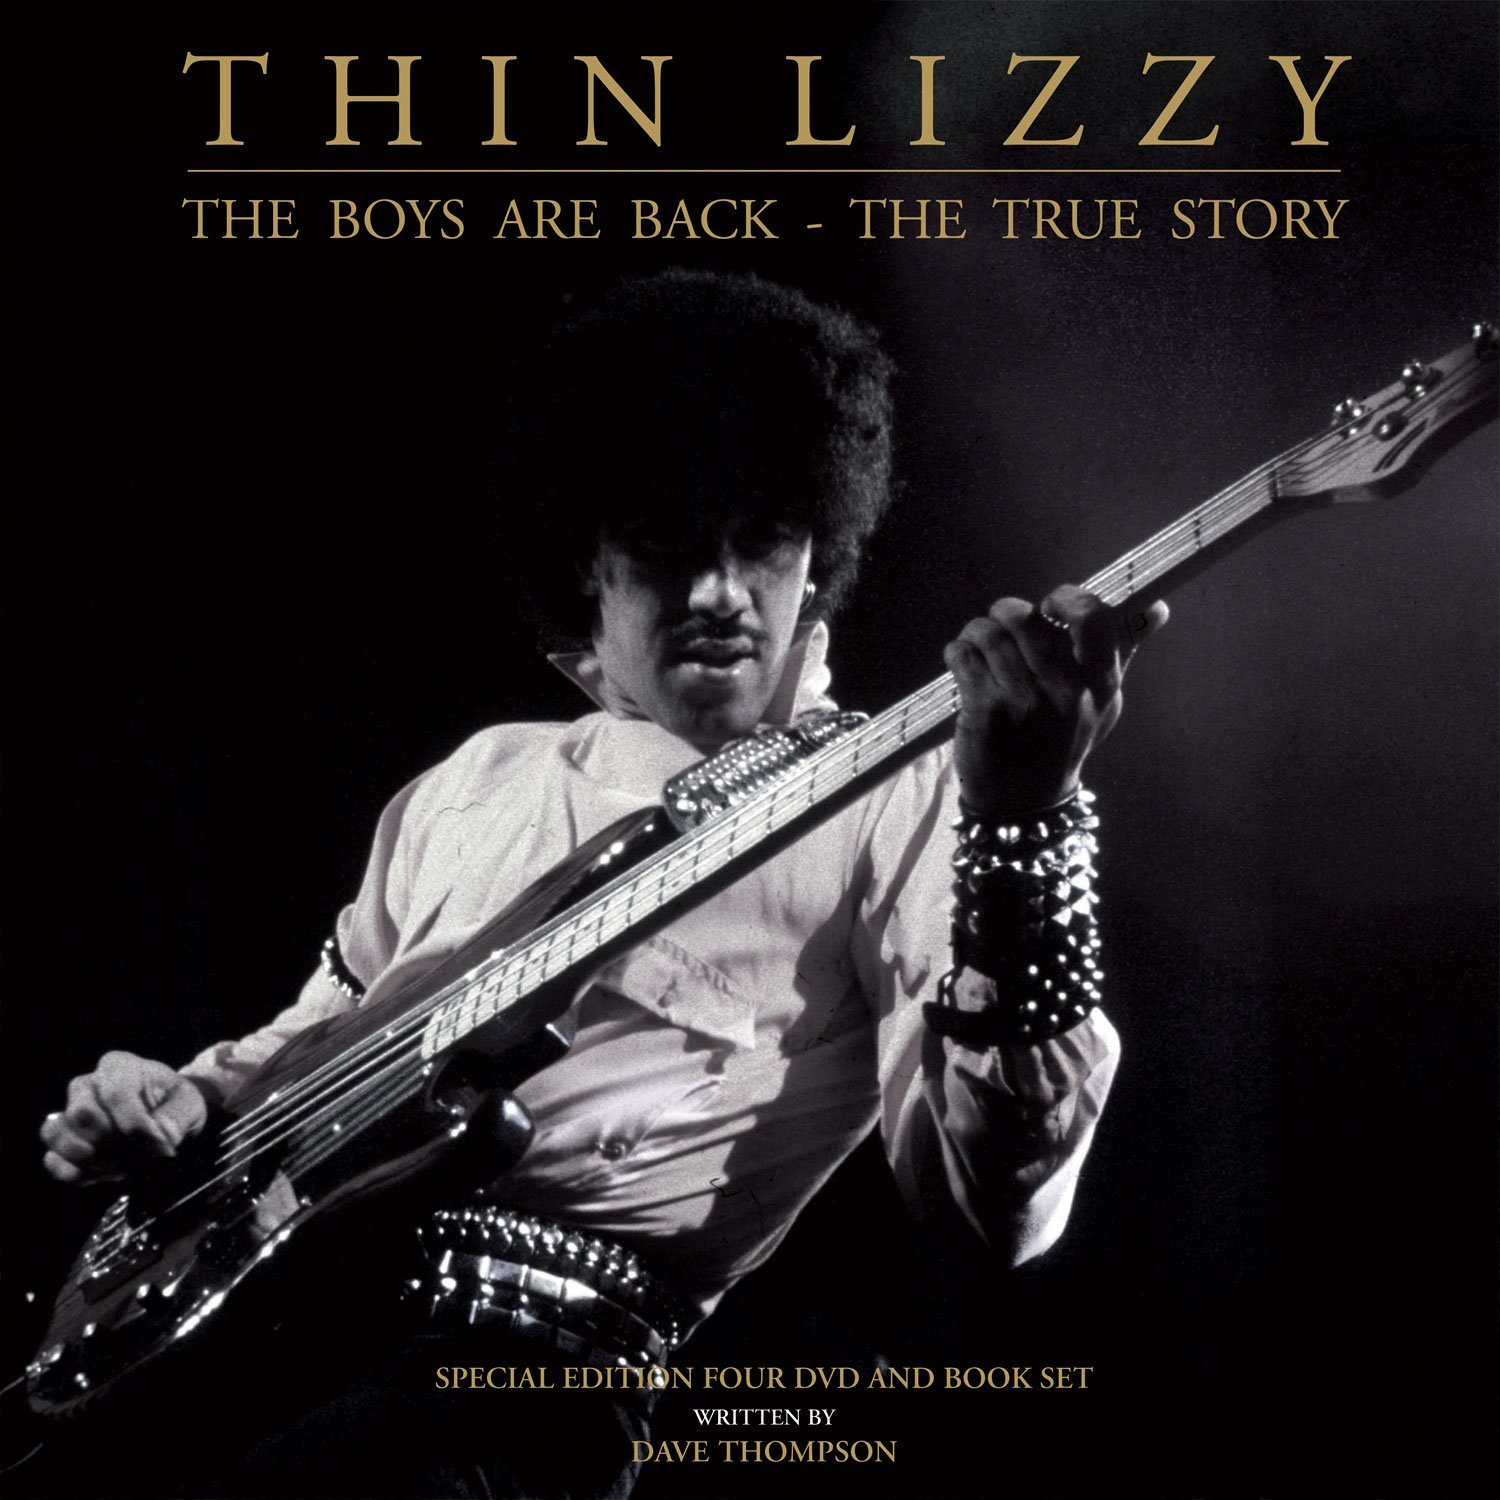 Thin Lizzy on The RockIt Scientist Tonight | The RockFest on Mix93.8fm: https://rockfestonmix938fm.wordpress.com/2013/01/11/thin-lizzy-on...